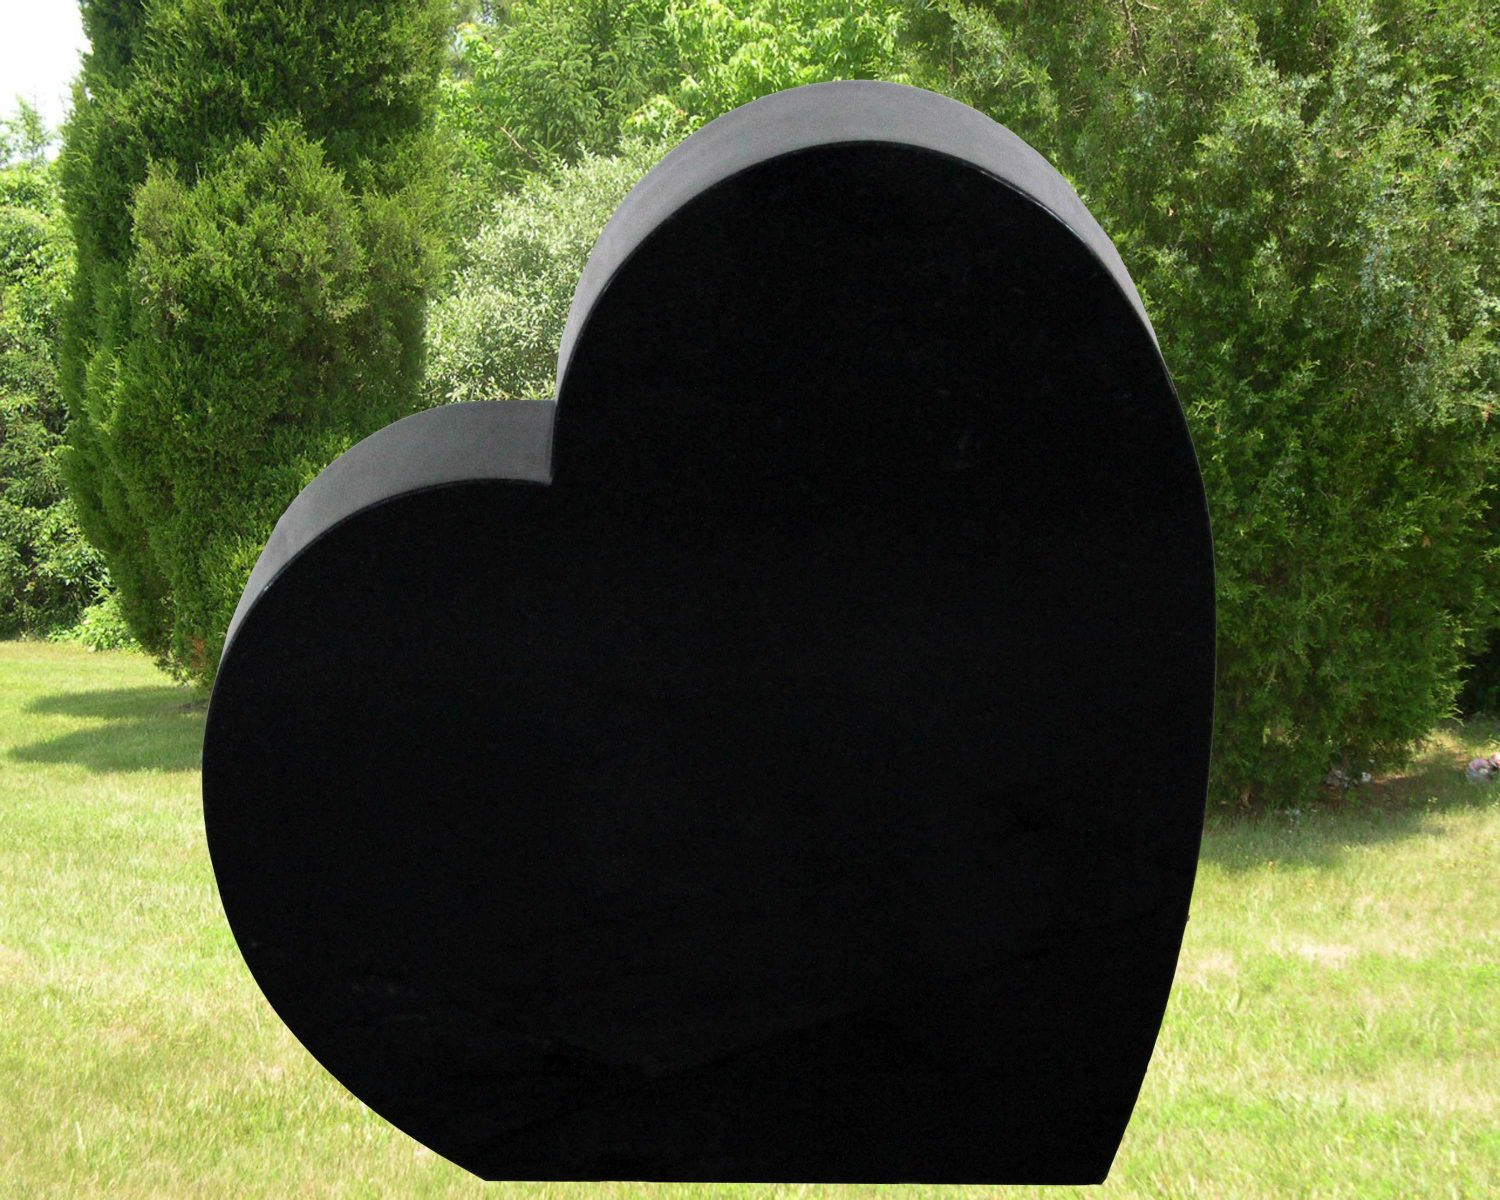 EG-15-134-418 / Jet Black / Tilted Single Heart Memorial